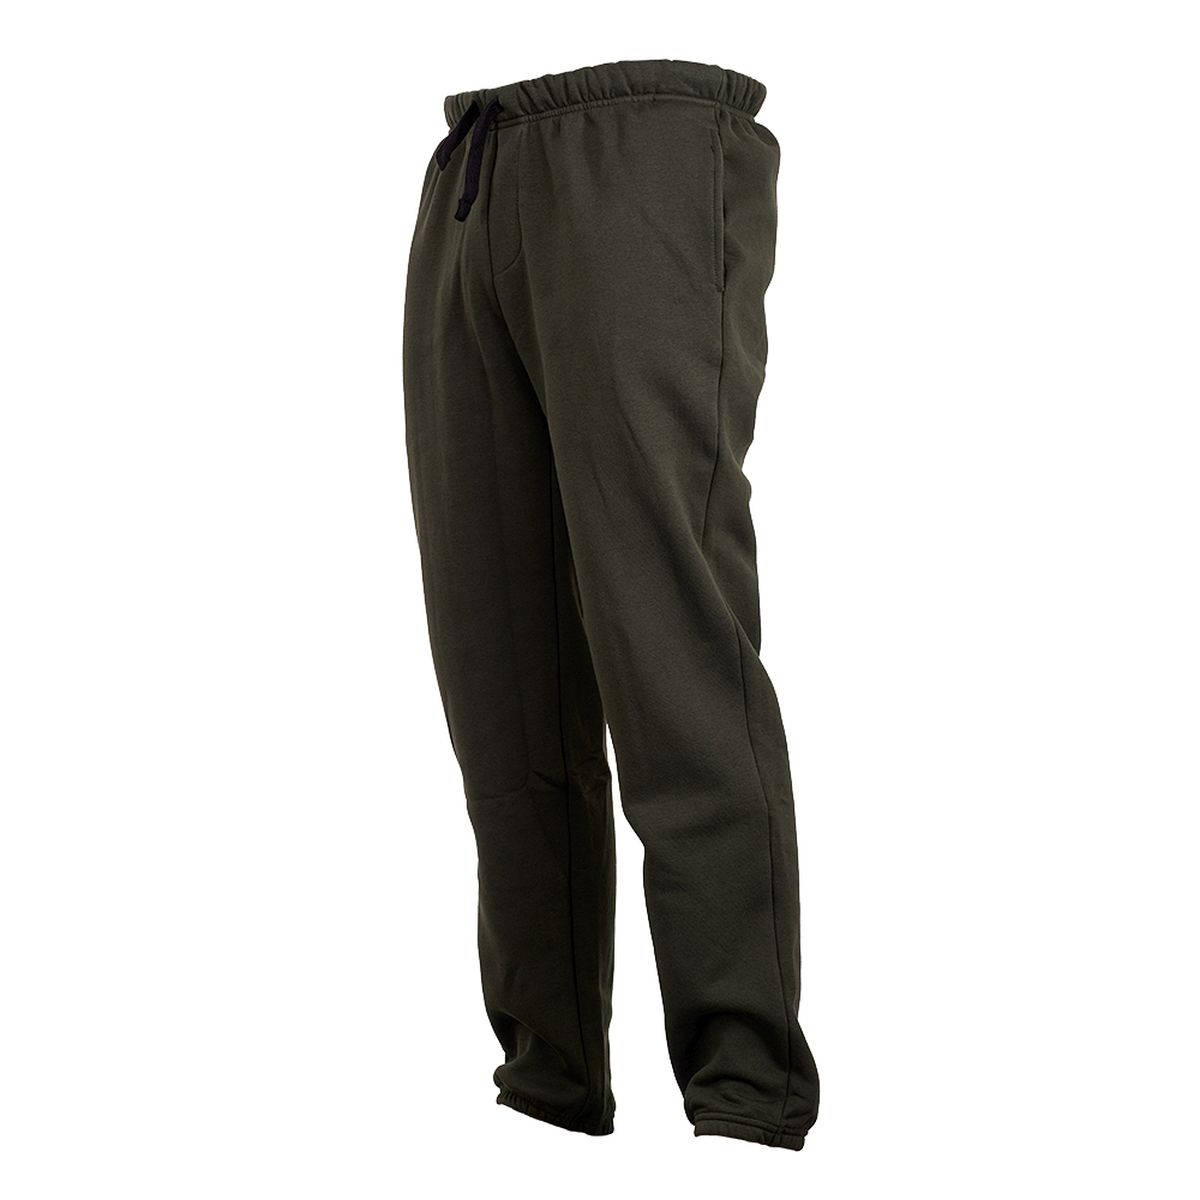 CARPSTYLE Bank Joggers - XXL